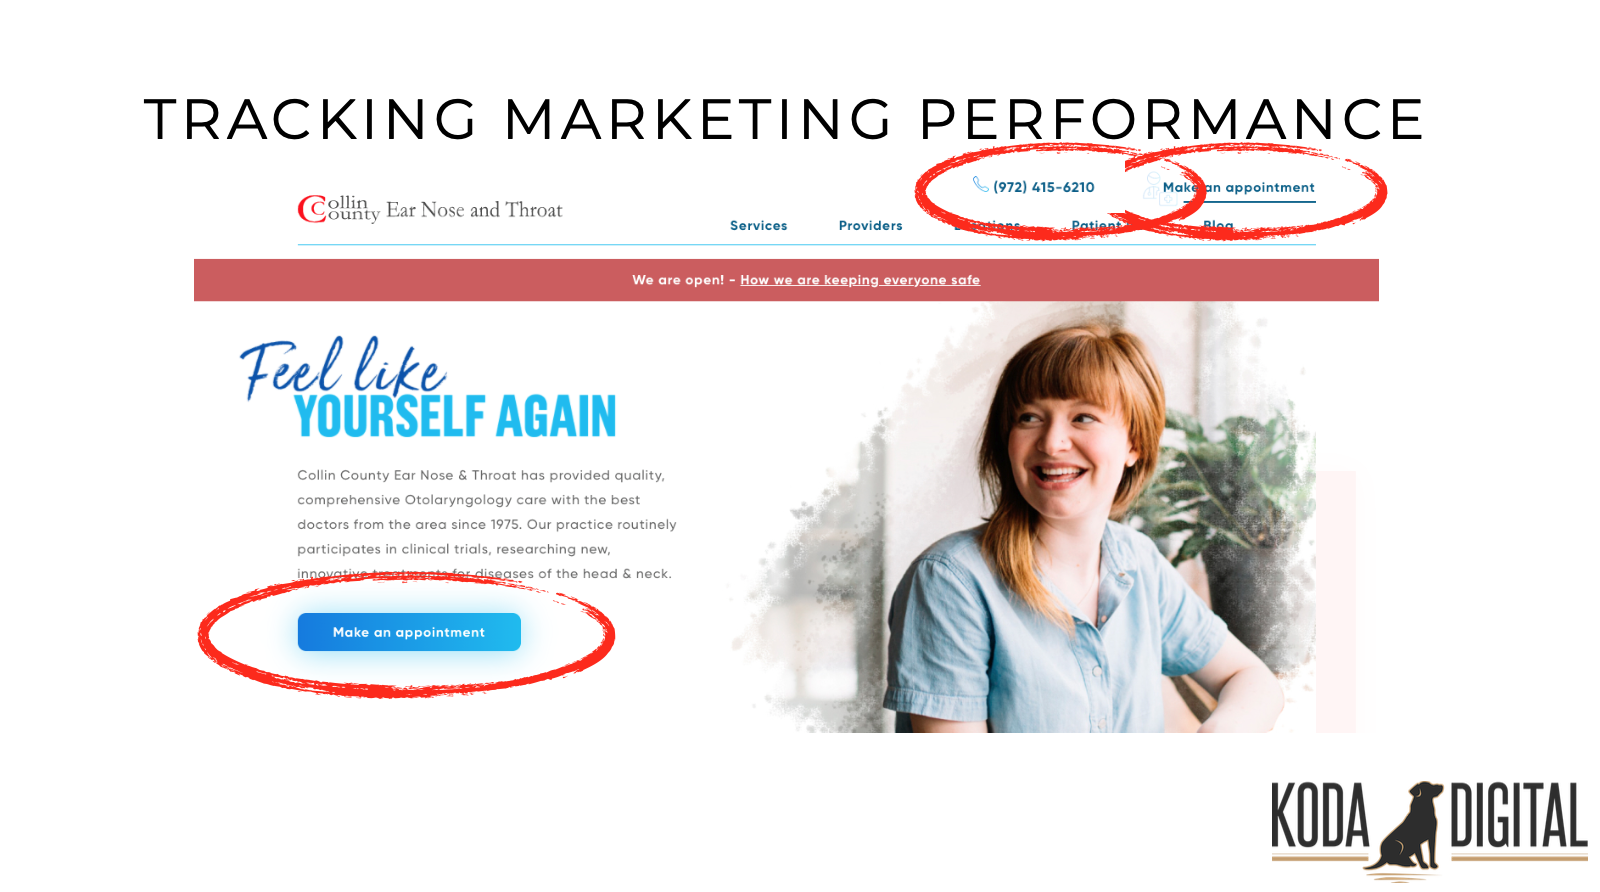 Example of a ENT practice with 3 ways to make an appointment on the homepage without scrolling down at all. This includes a Call-to-Action (CTA) button, as well as phone number and appointment options in the header navigation.